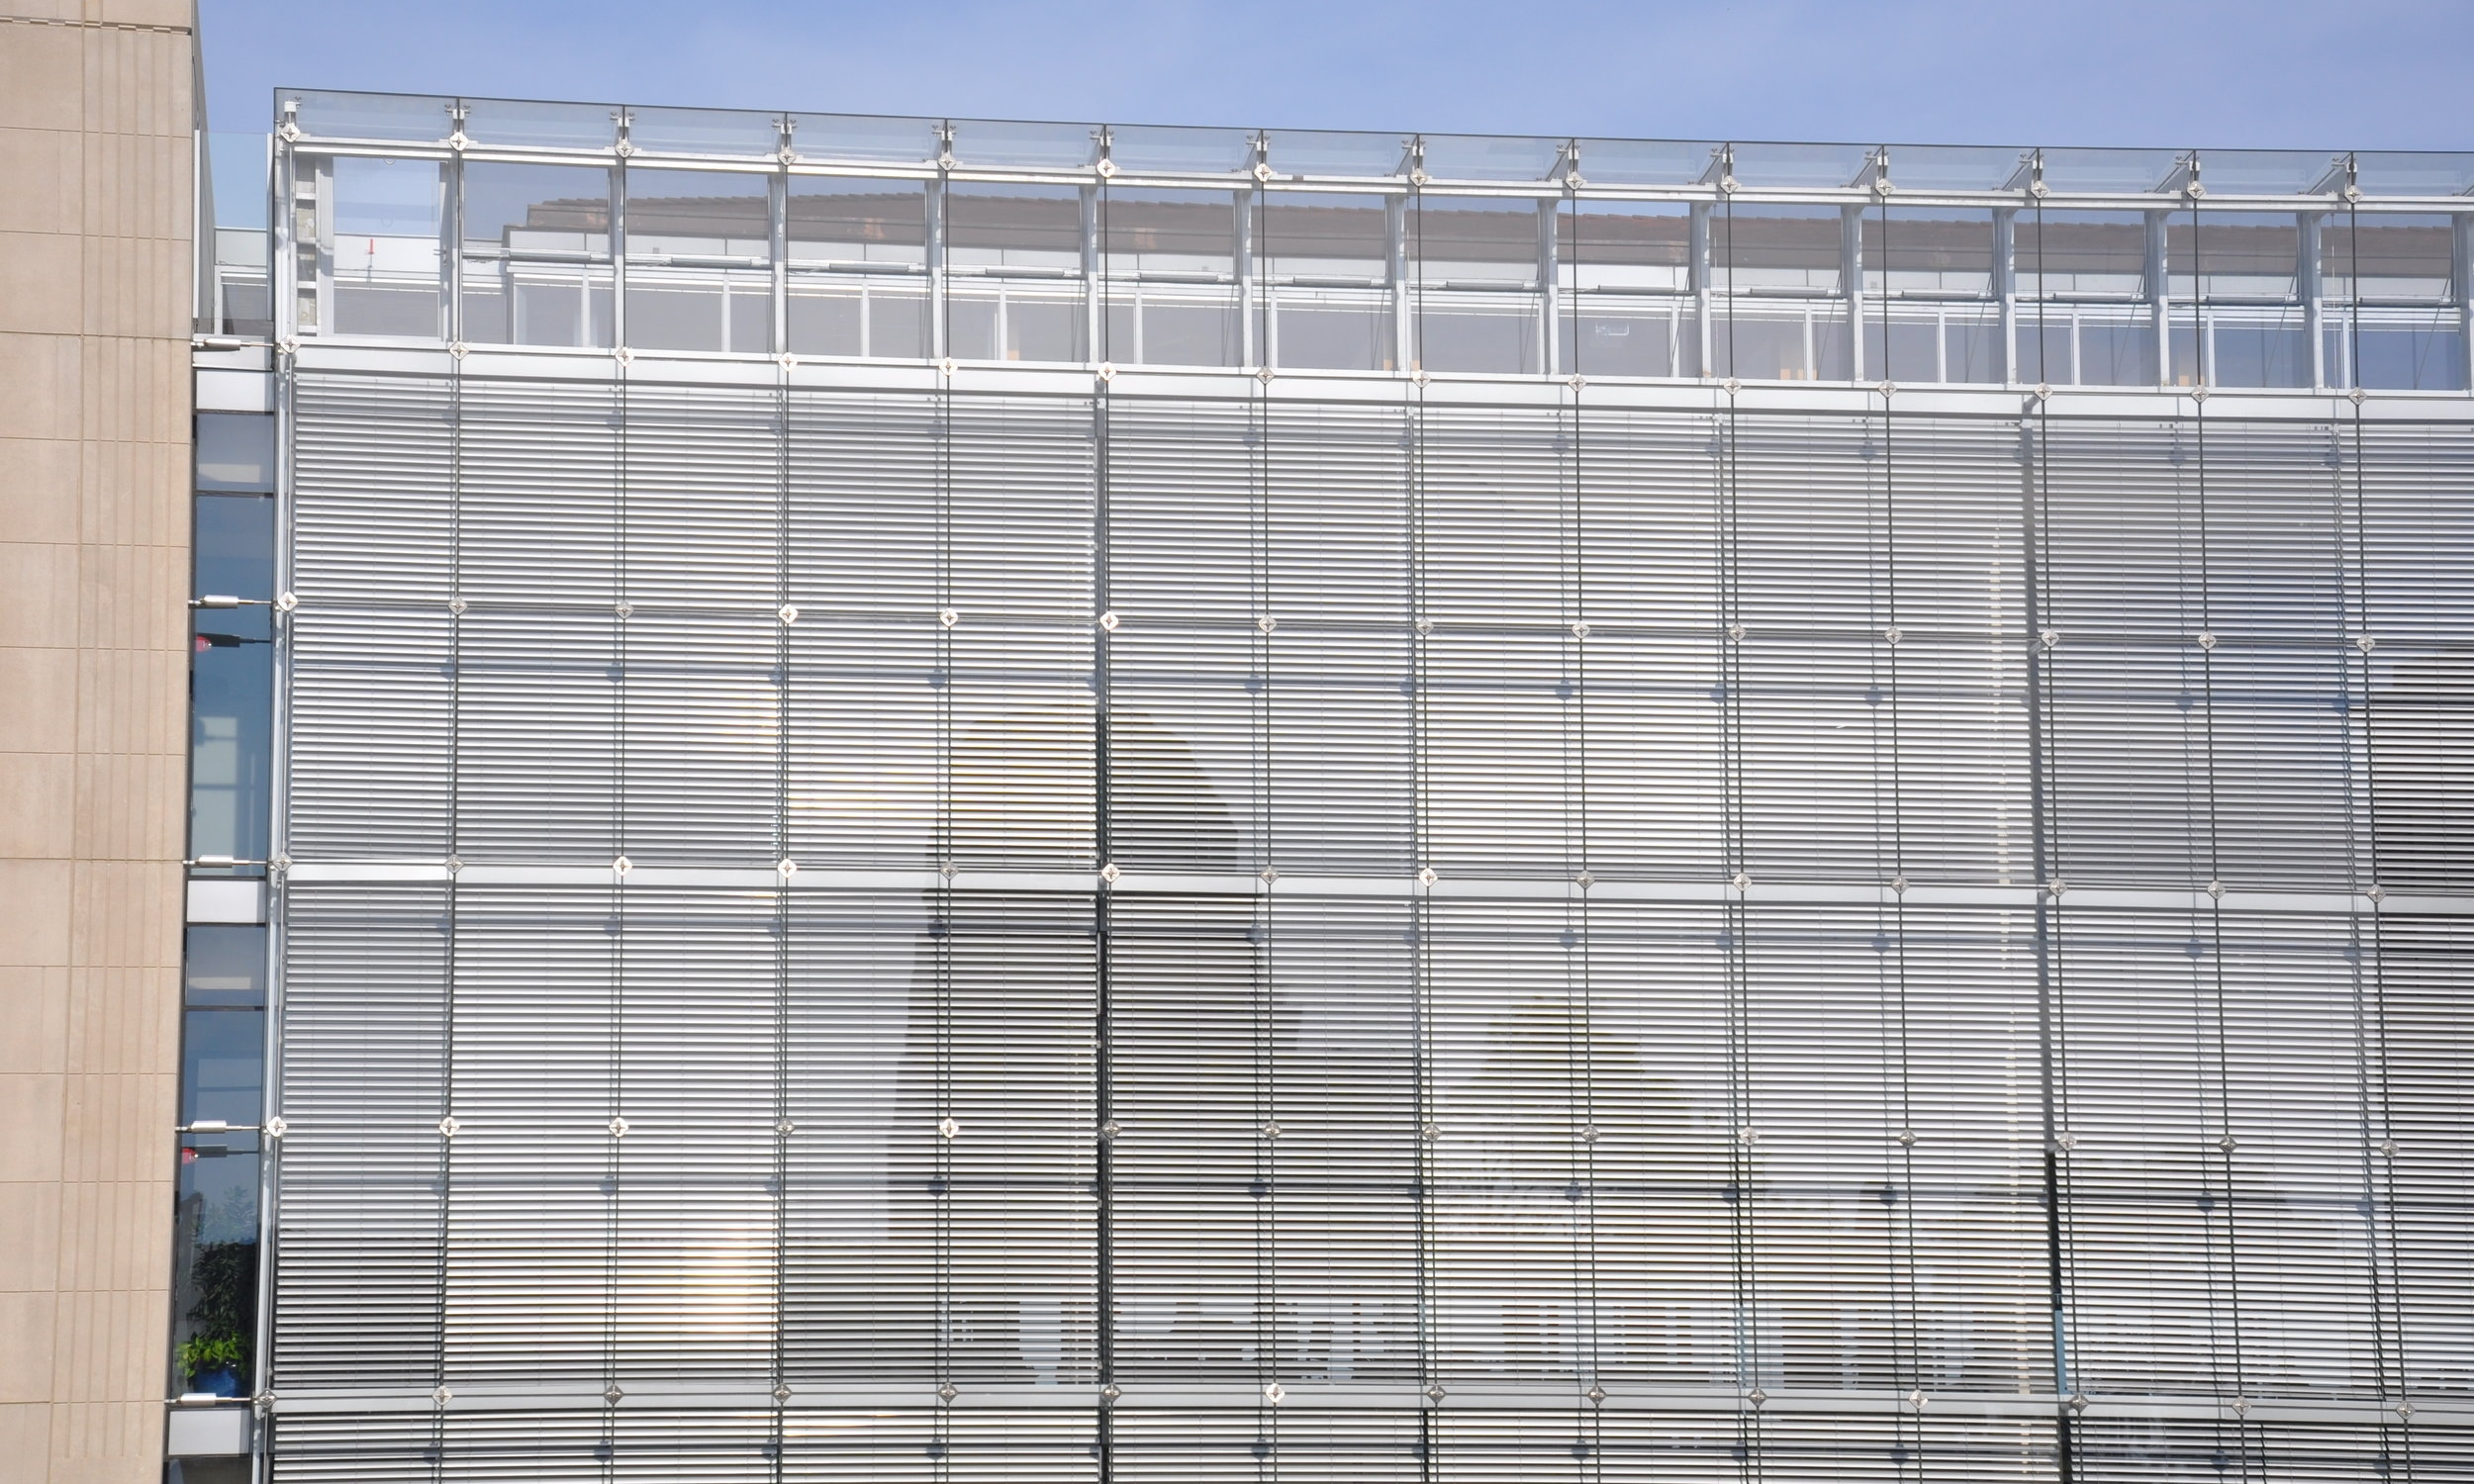 Solar Energy Systems - The structural strength and adaptability of VS1 allows for direct attachment of external shading, panels, and other solar energy systems.Pictured: Klarcheck Commons at Loyola University Chicago